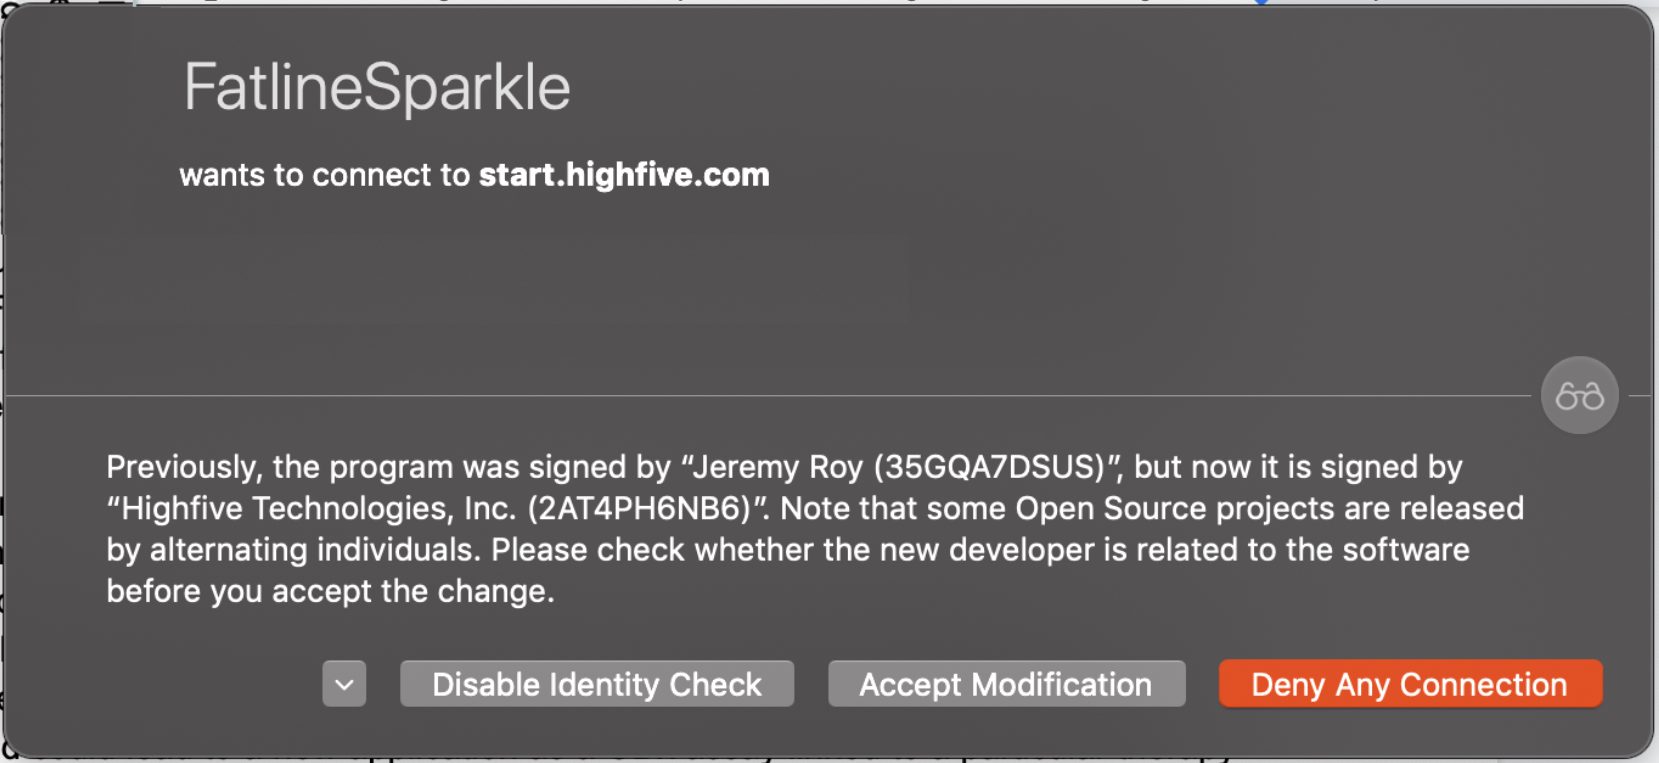 fatline_sparkle_signature.png